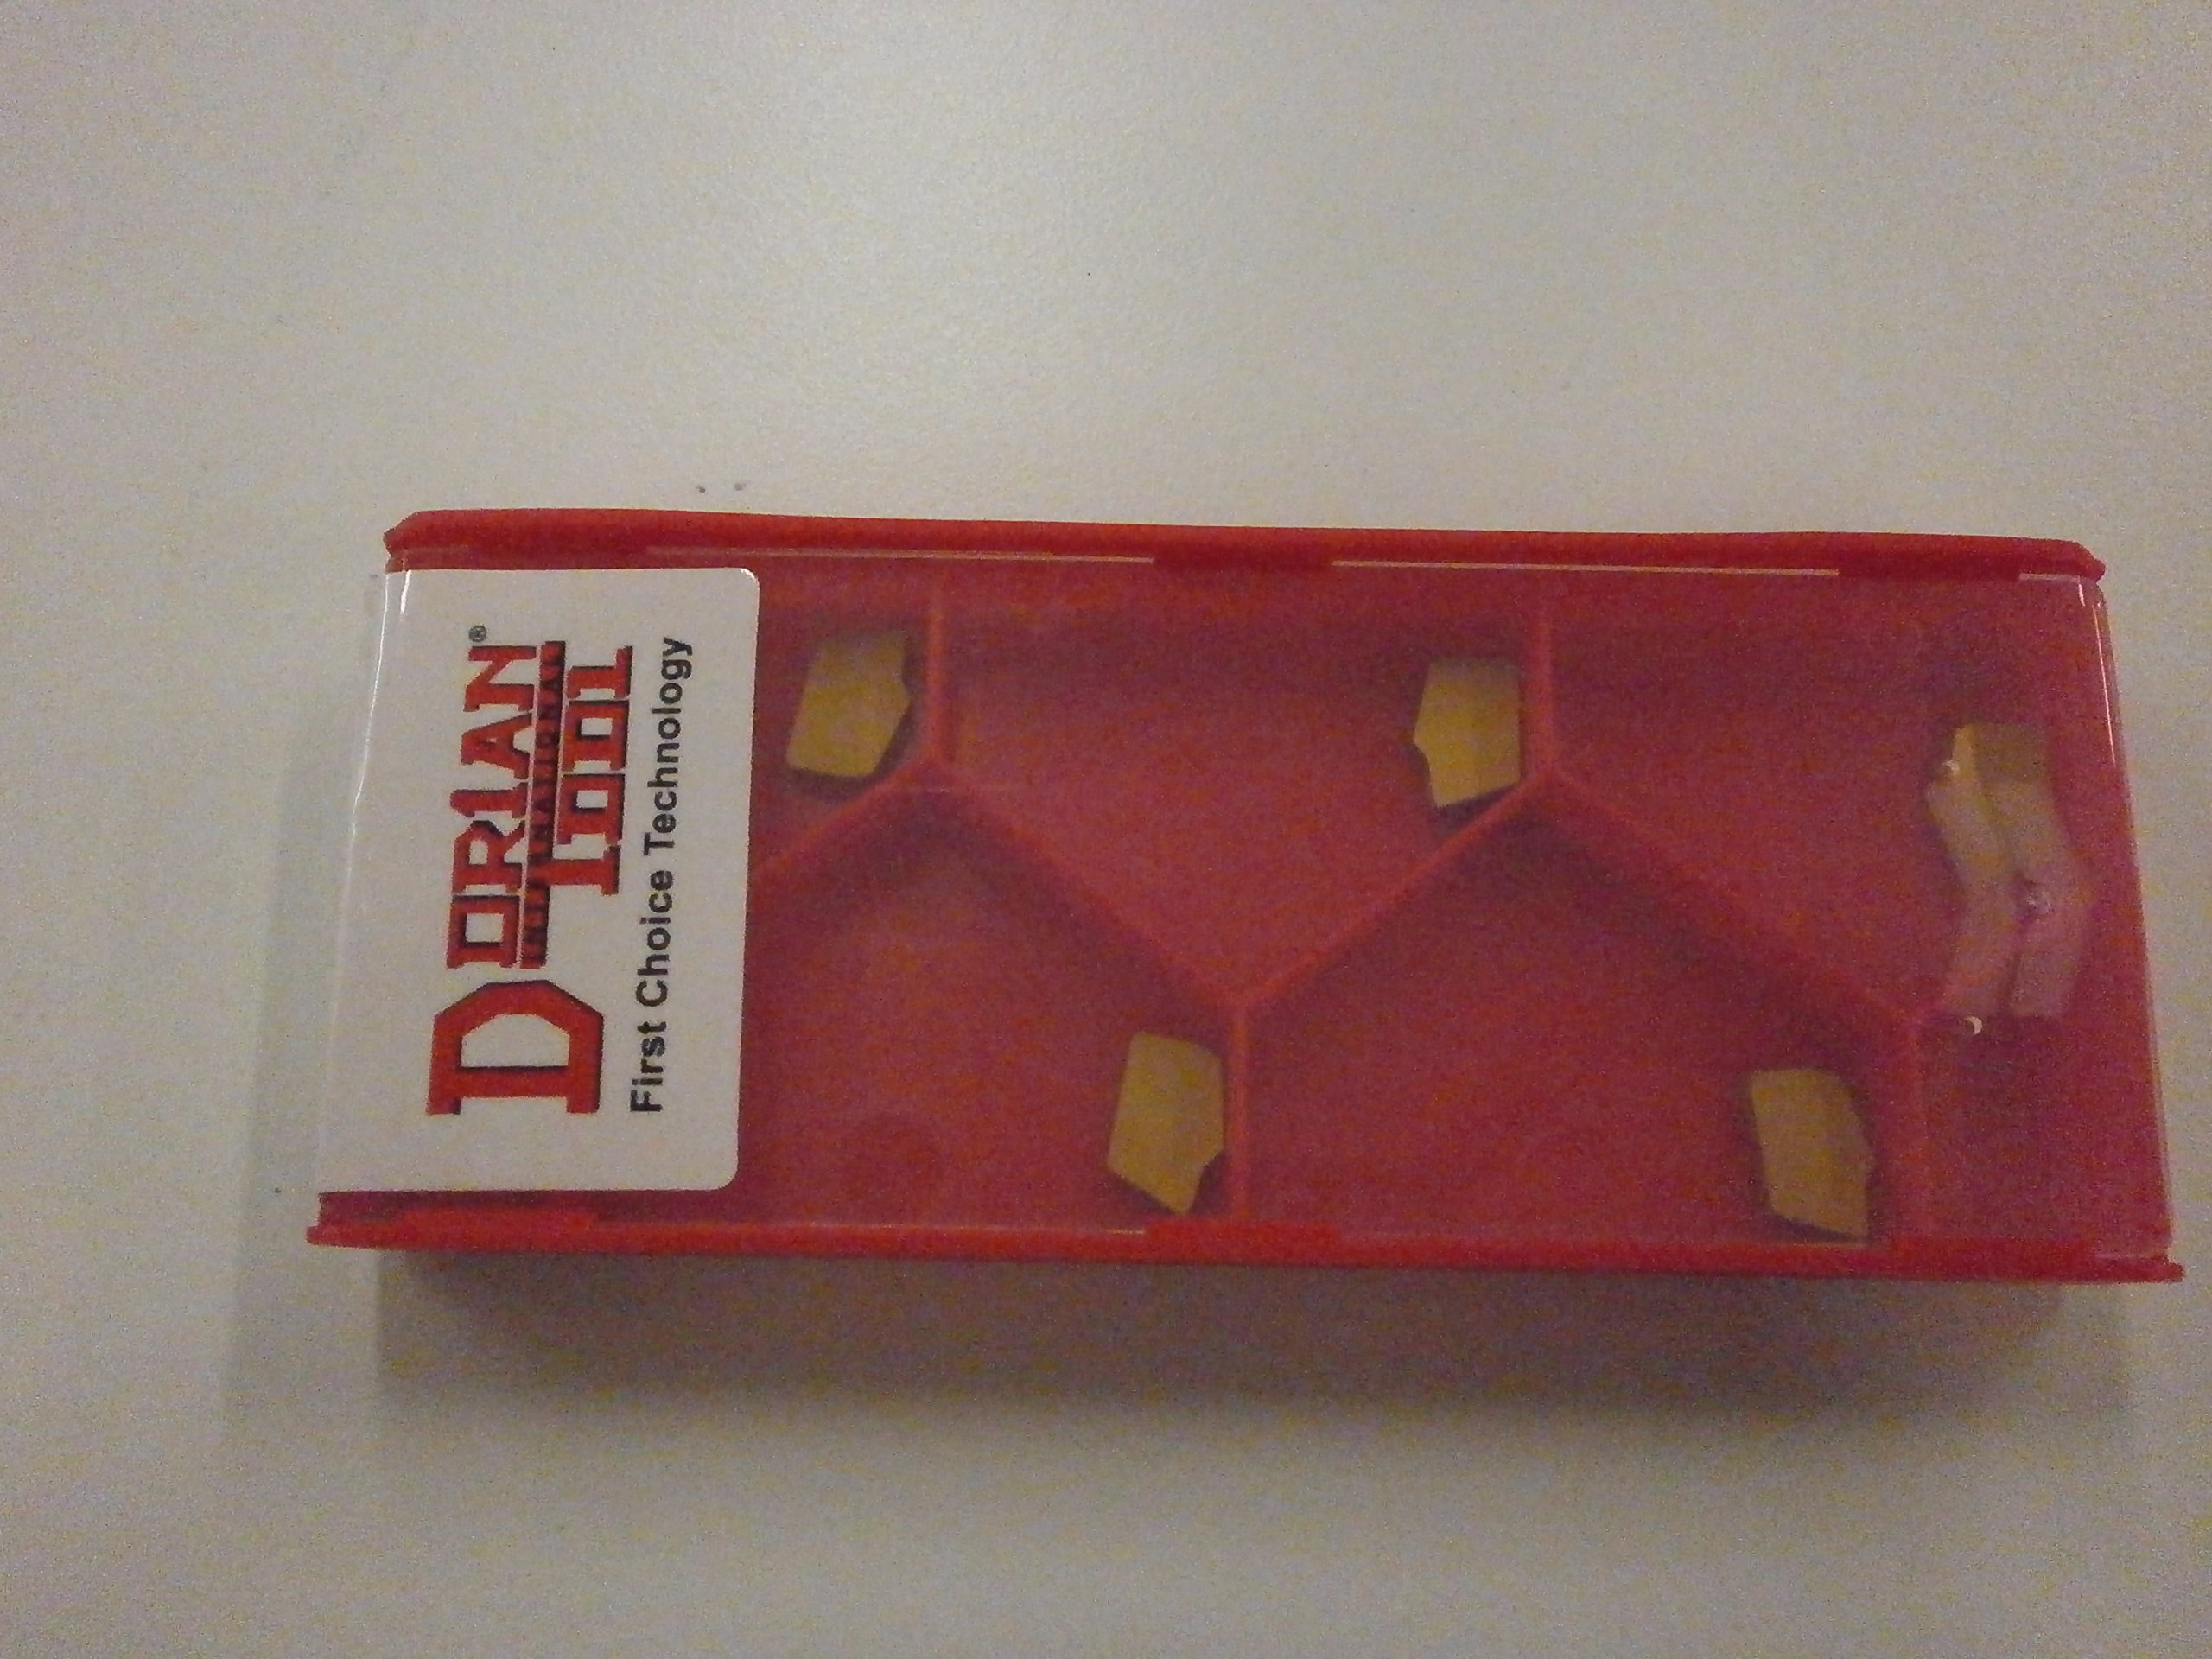 Dorian Tool SGTN 2 DC656 GTN 2 Carbide Cut Off Inserts Gold Coated for Steel, Made in USA, 82222